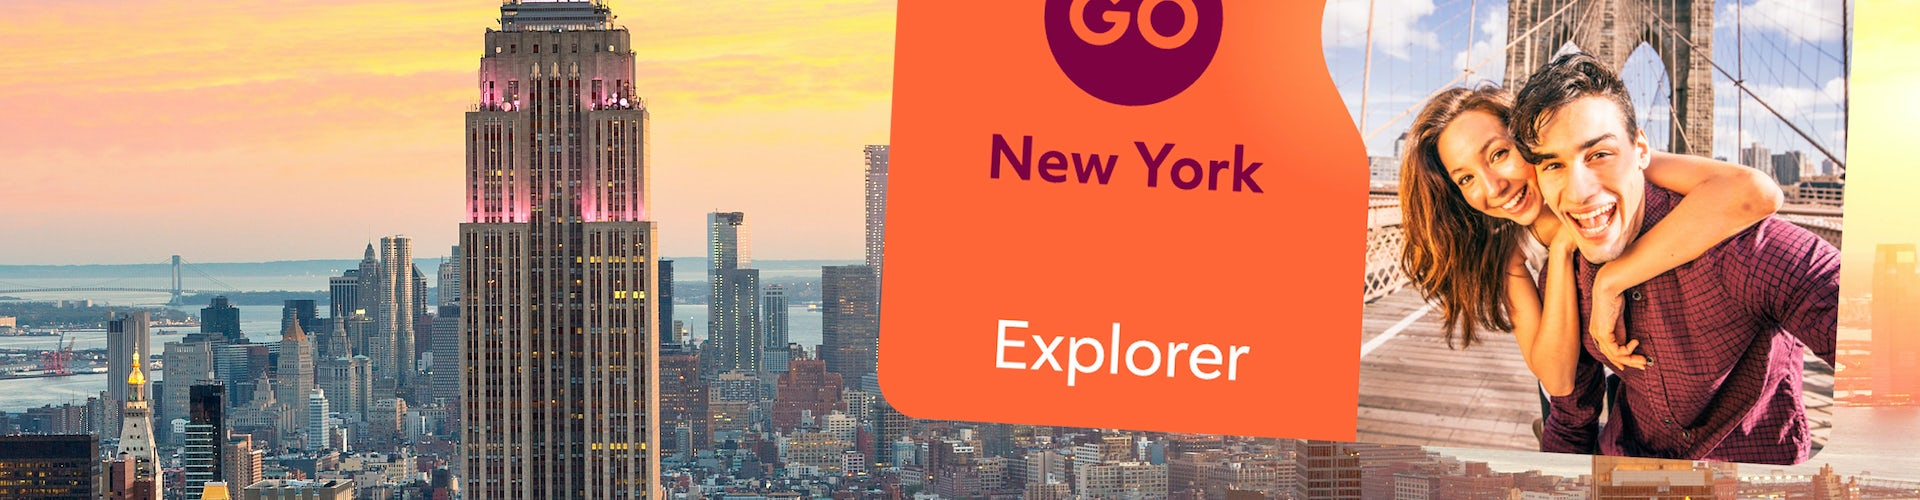 Go New York Explorer Pass 3